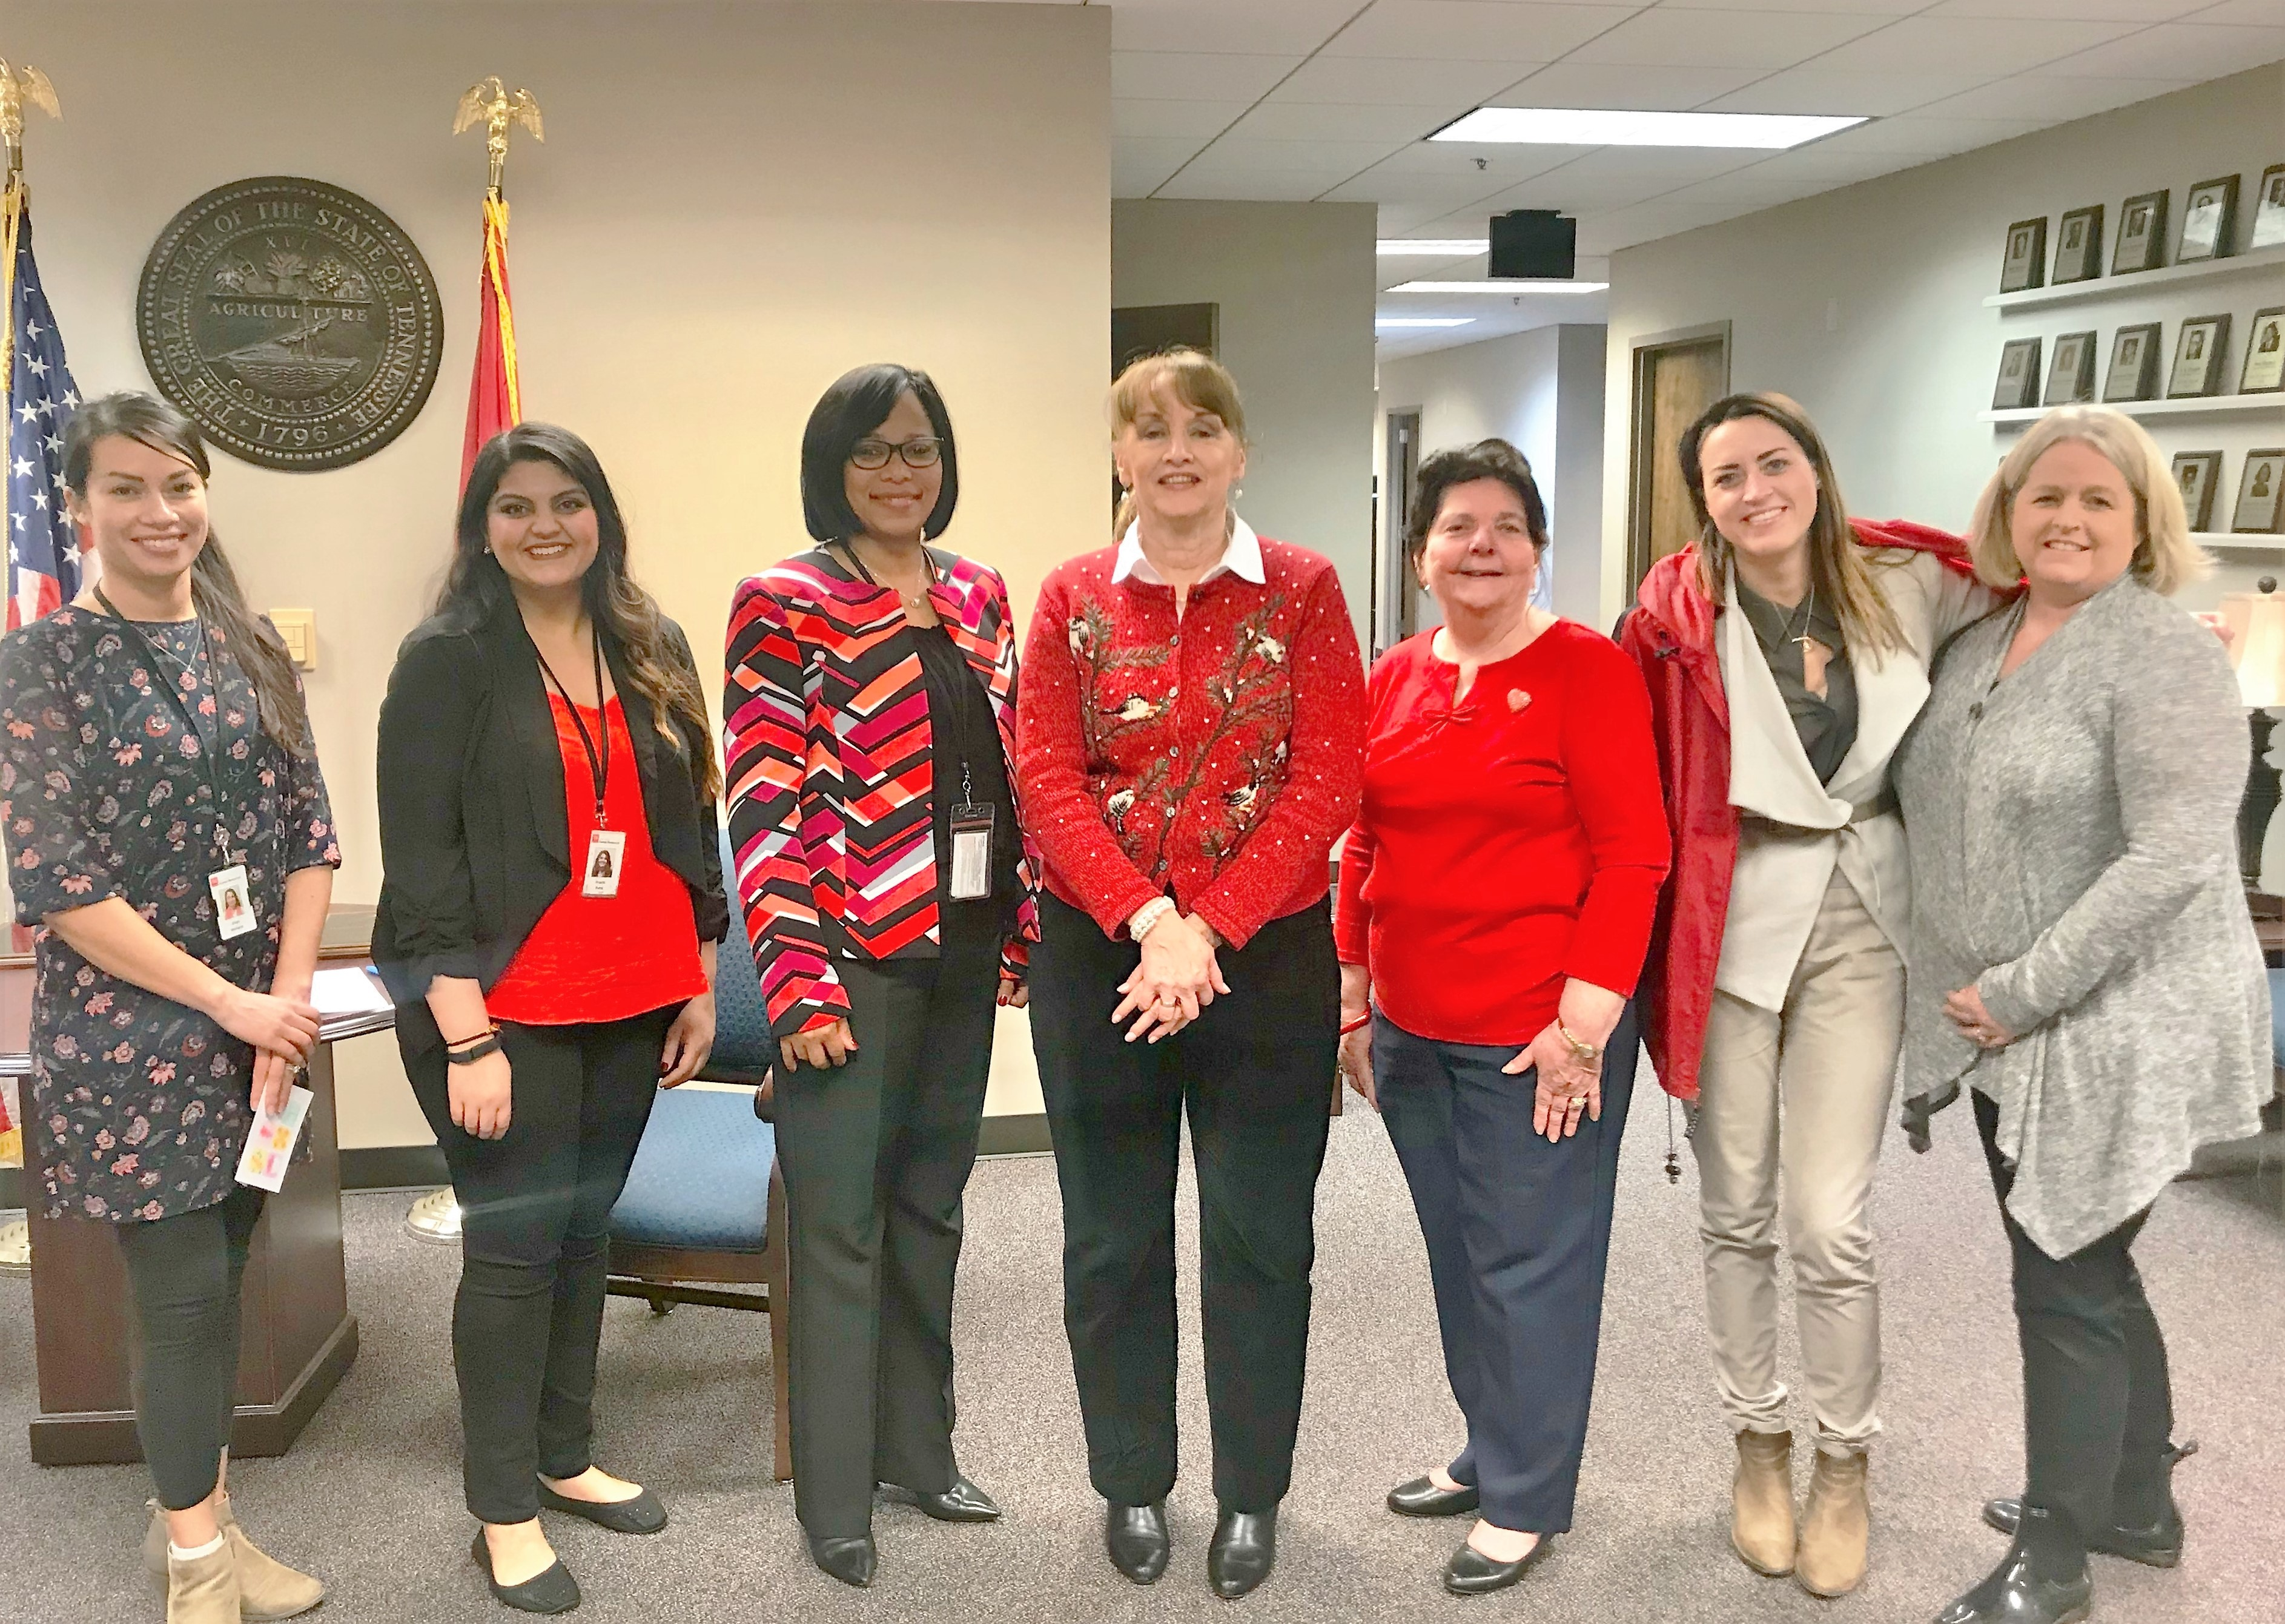 The Department of Human Resources hosted a 15-minute wellness walk to raise awareness about heart disease and stroke. Pictured is the DOHR Wellness Council and Commissioner Hunter.